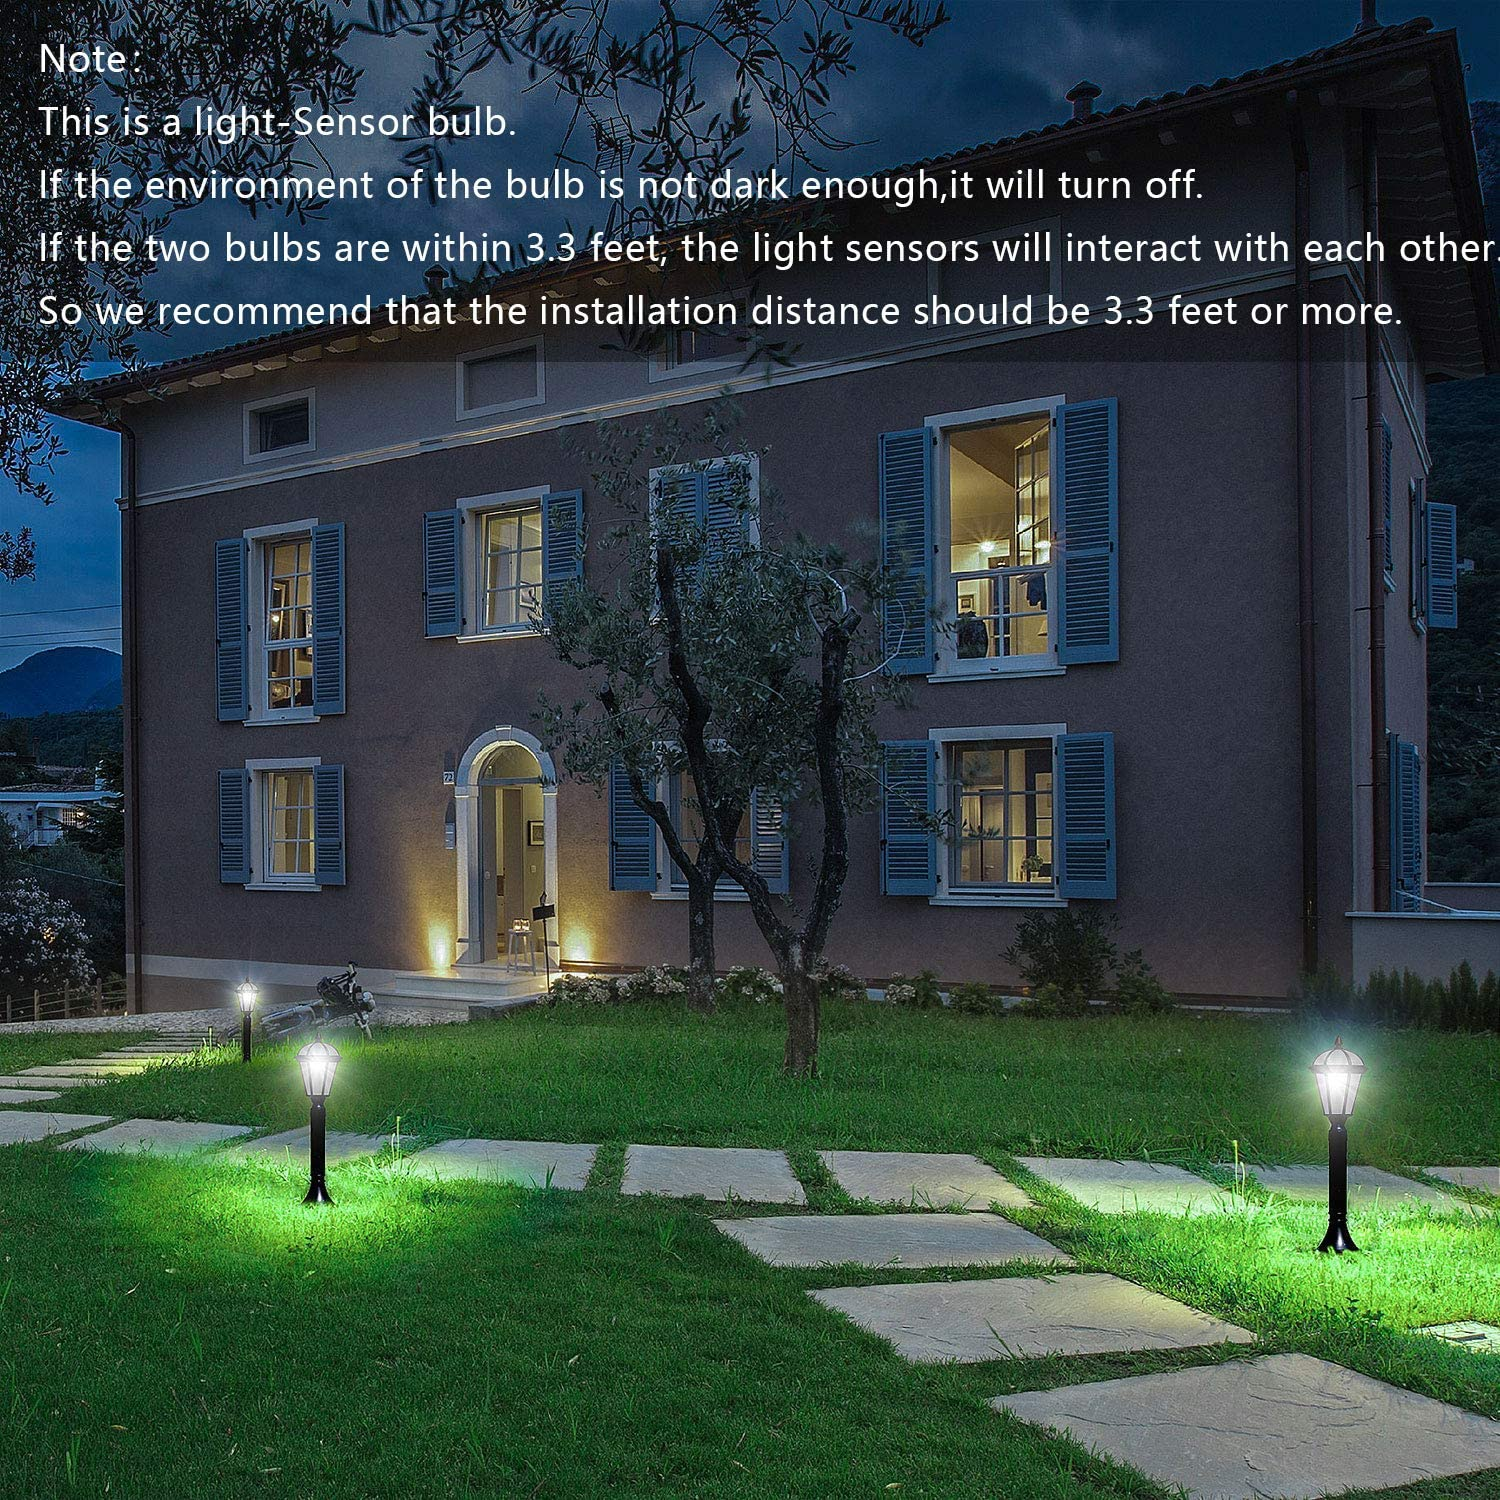 Dusk to Dawn Light Sensor Light Bulbs Porch Driveway Security Light LED Candle Bulb Bogao E12 Candelabra LED Bulb 2 Pack White 6000K 6W 60W Equivalent Not Dimmable Candelabra Base